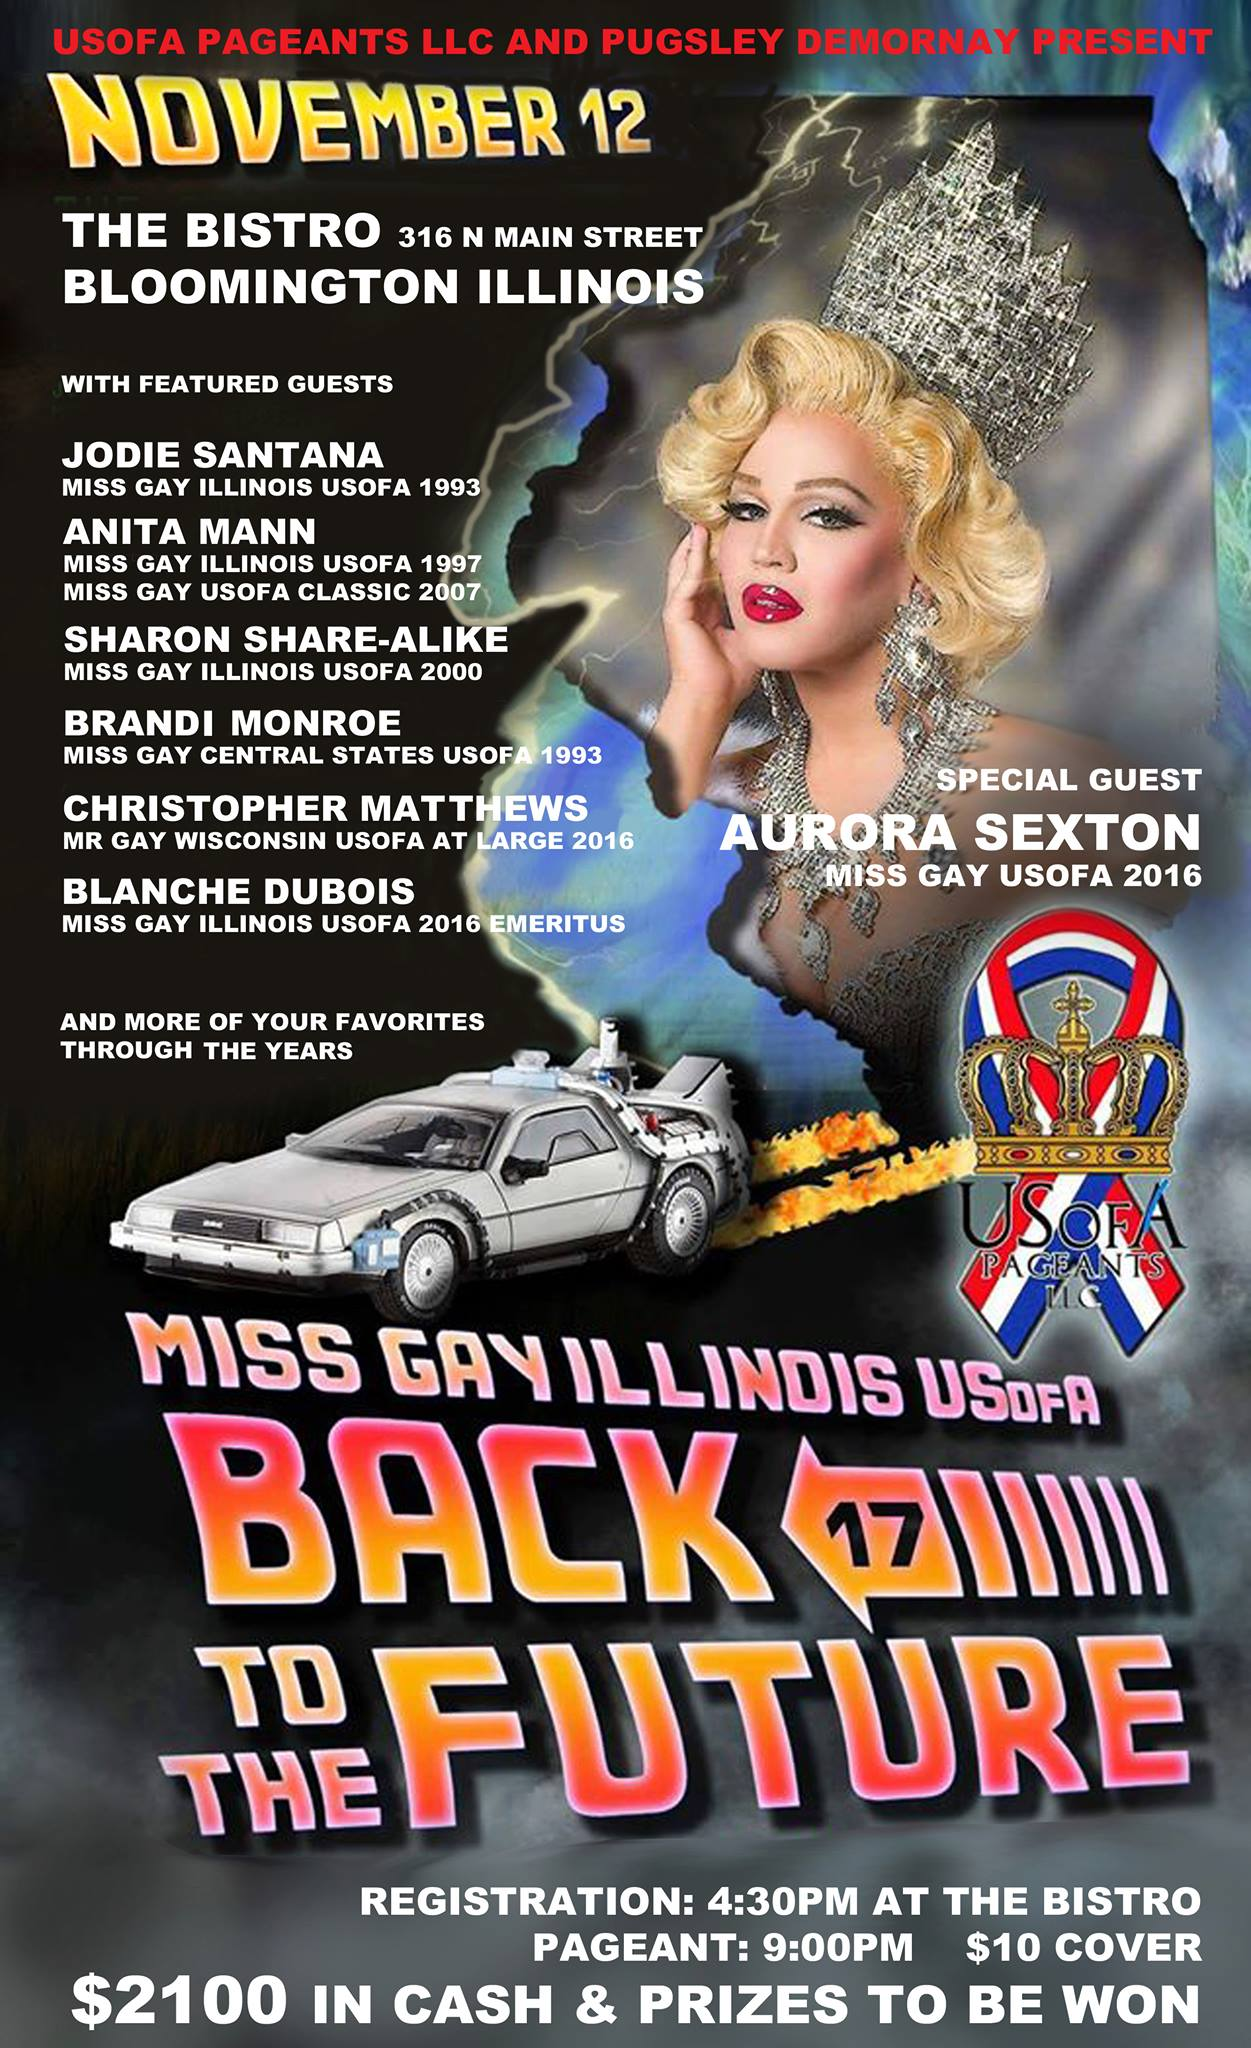 Show Ad | Miss Gay Illinois USofA | The Bistro (Bloomington, Illinois) | 11/12/2016